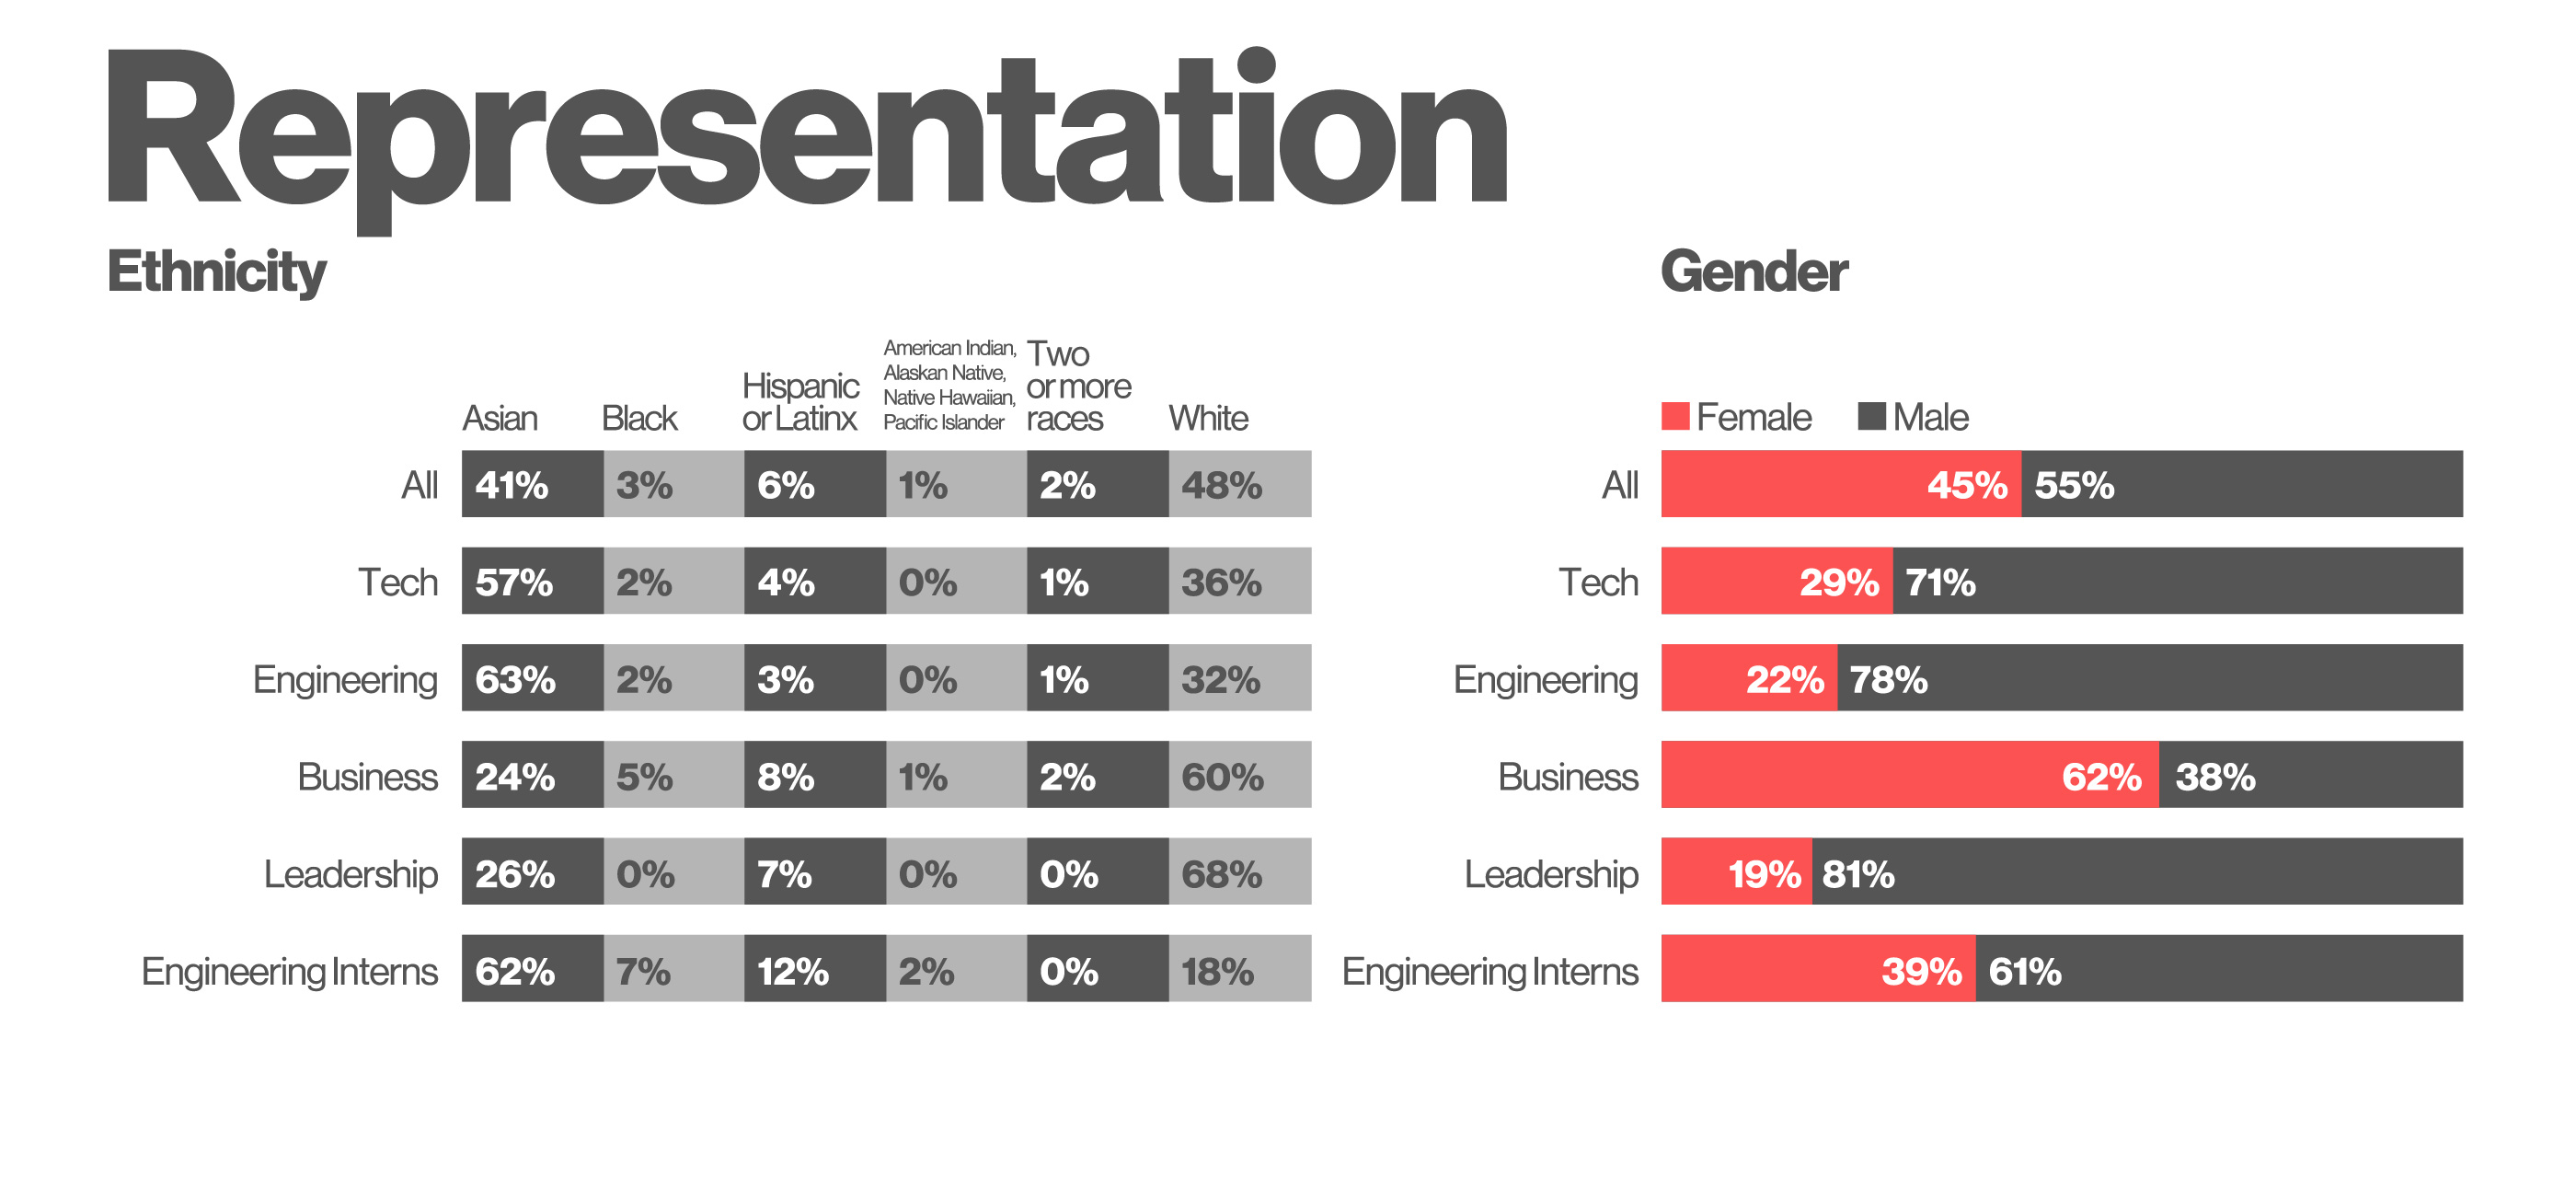 Pinterest beat hiring goals for women in engineering, missed for underrepresented minorities